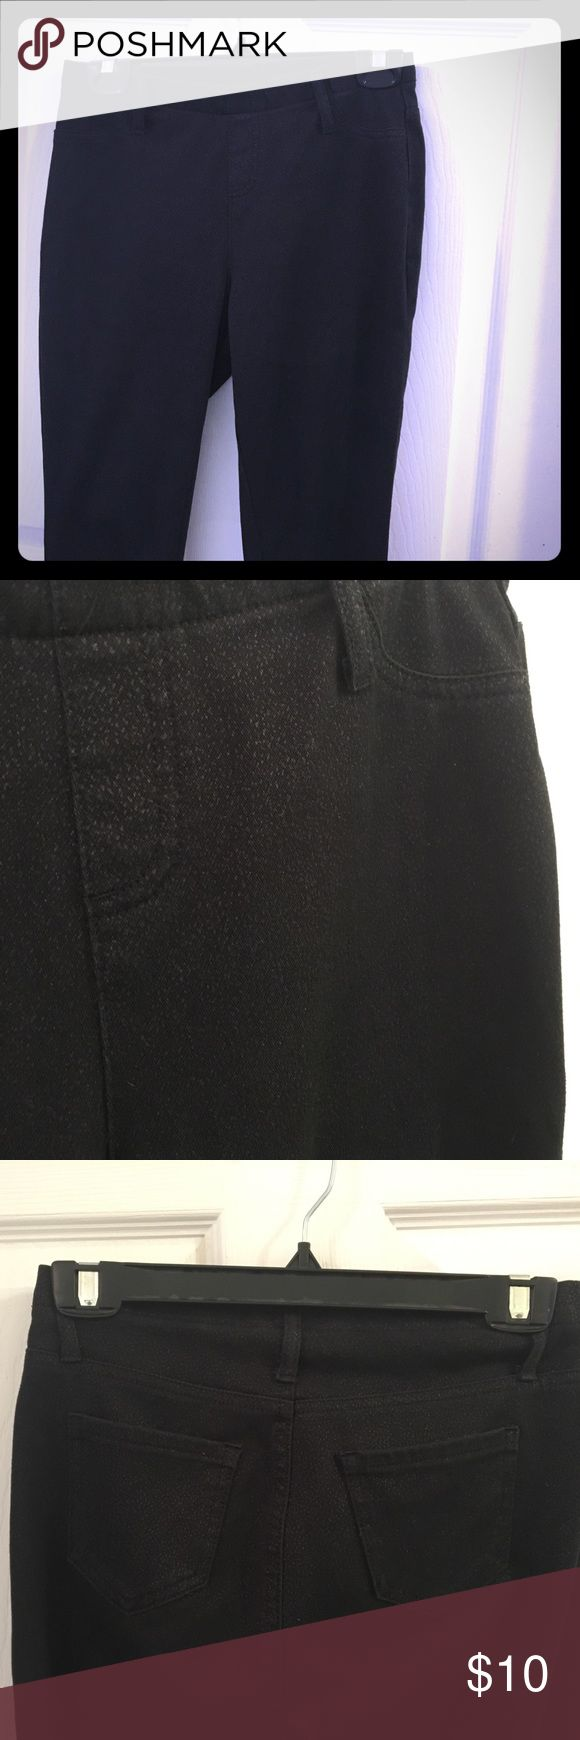 Black womens jeggings Faded glory size S, has small black speckled print. Skinny legged , worn as leggings with boots. Elastic waistband. Faded Glory Pants Leggings